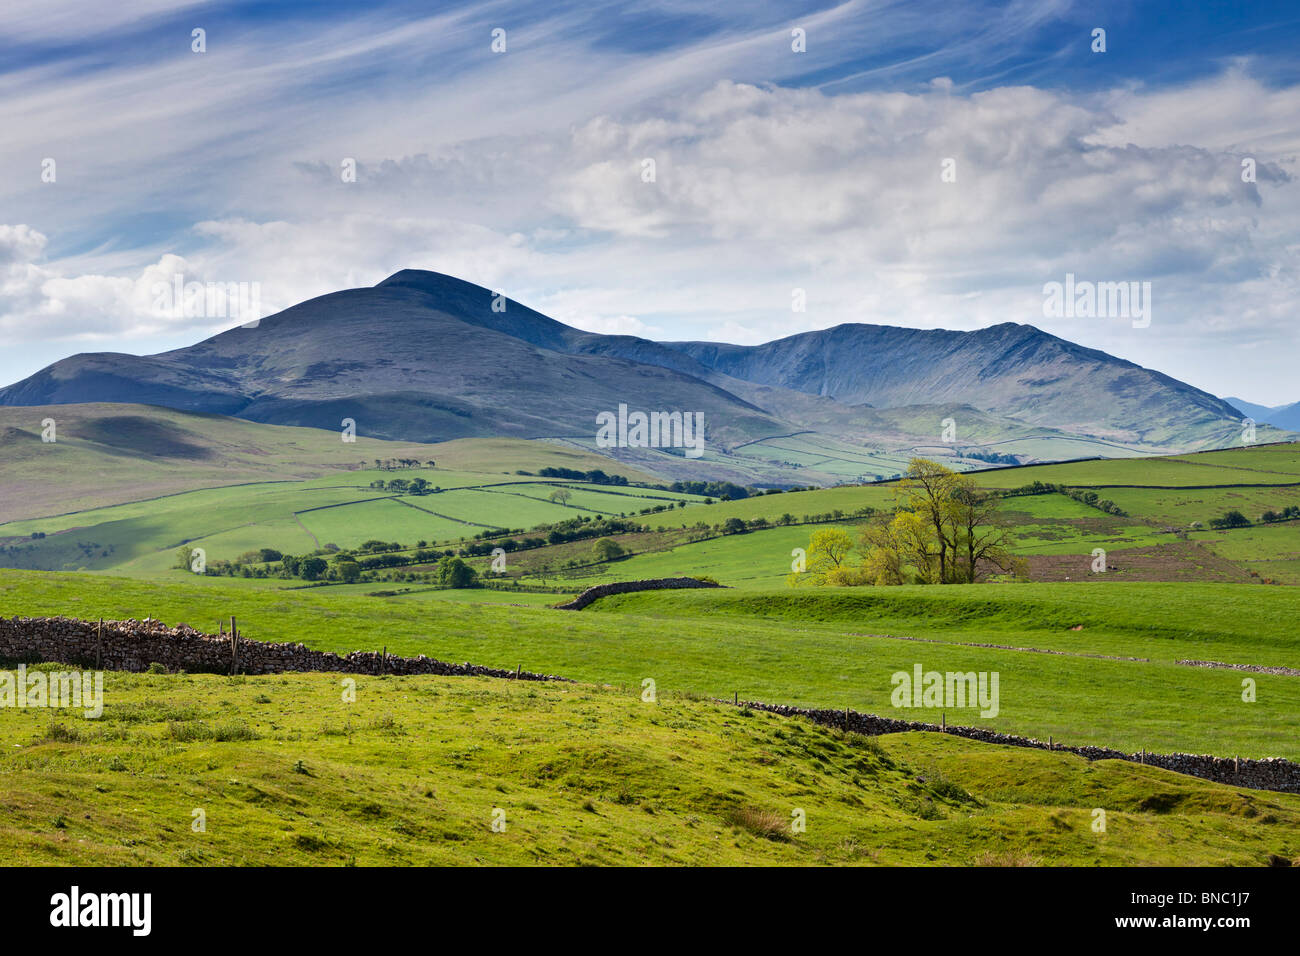 Ansicht von Skiddaw, Lake District, UK - Nordwand von Uldale Stockbild